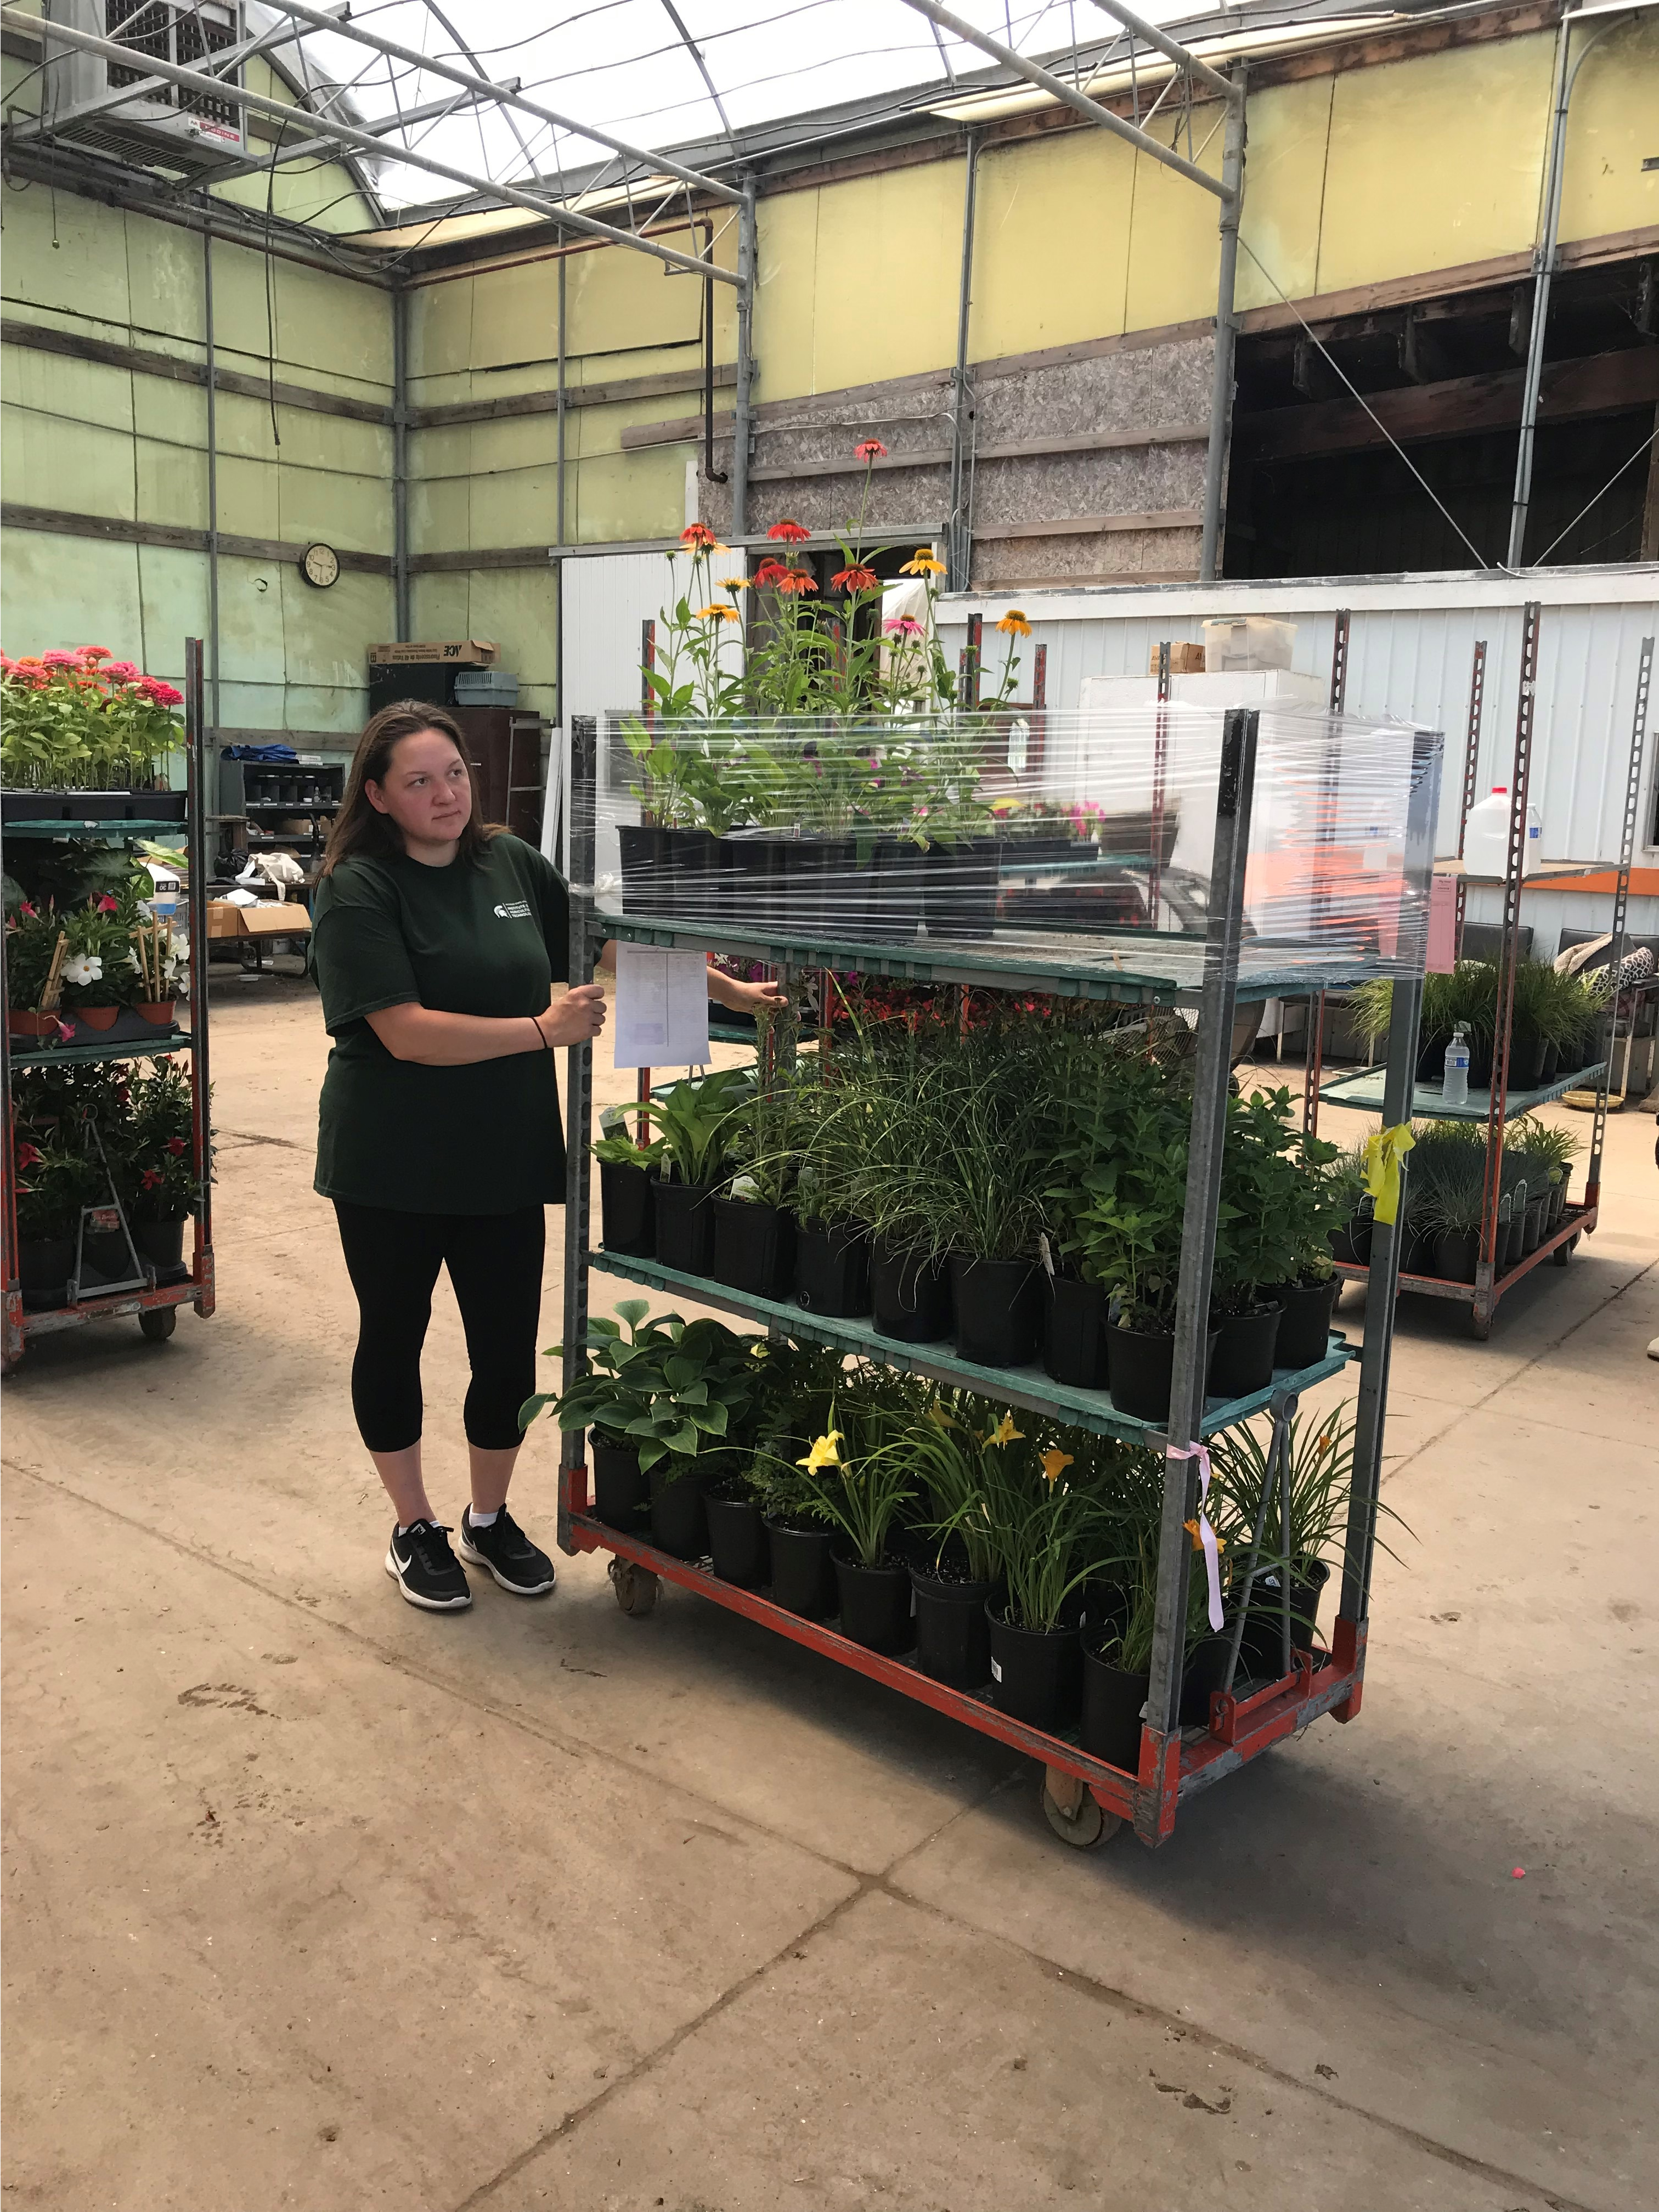 Landscape management student Danielle Dunn pushes a cart of plants at Moose & Squirrel Horticultural Resources Greenhouse in Carleton, Michigan.